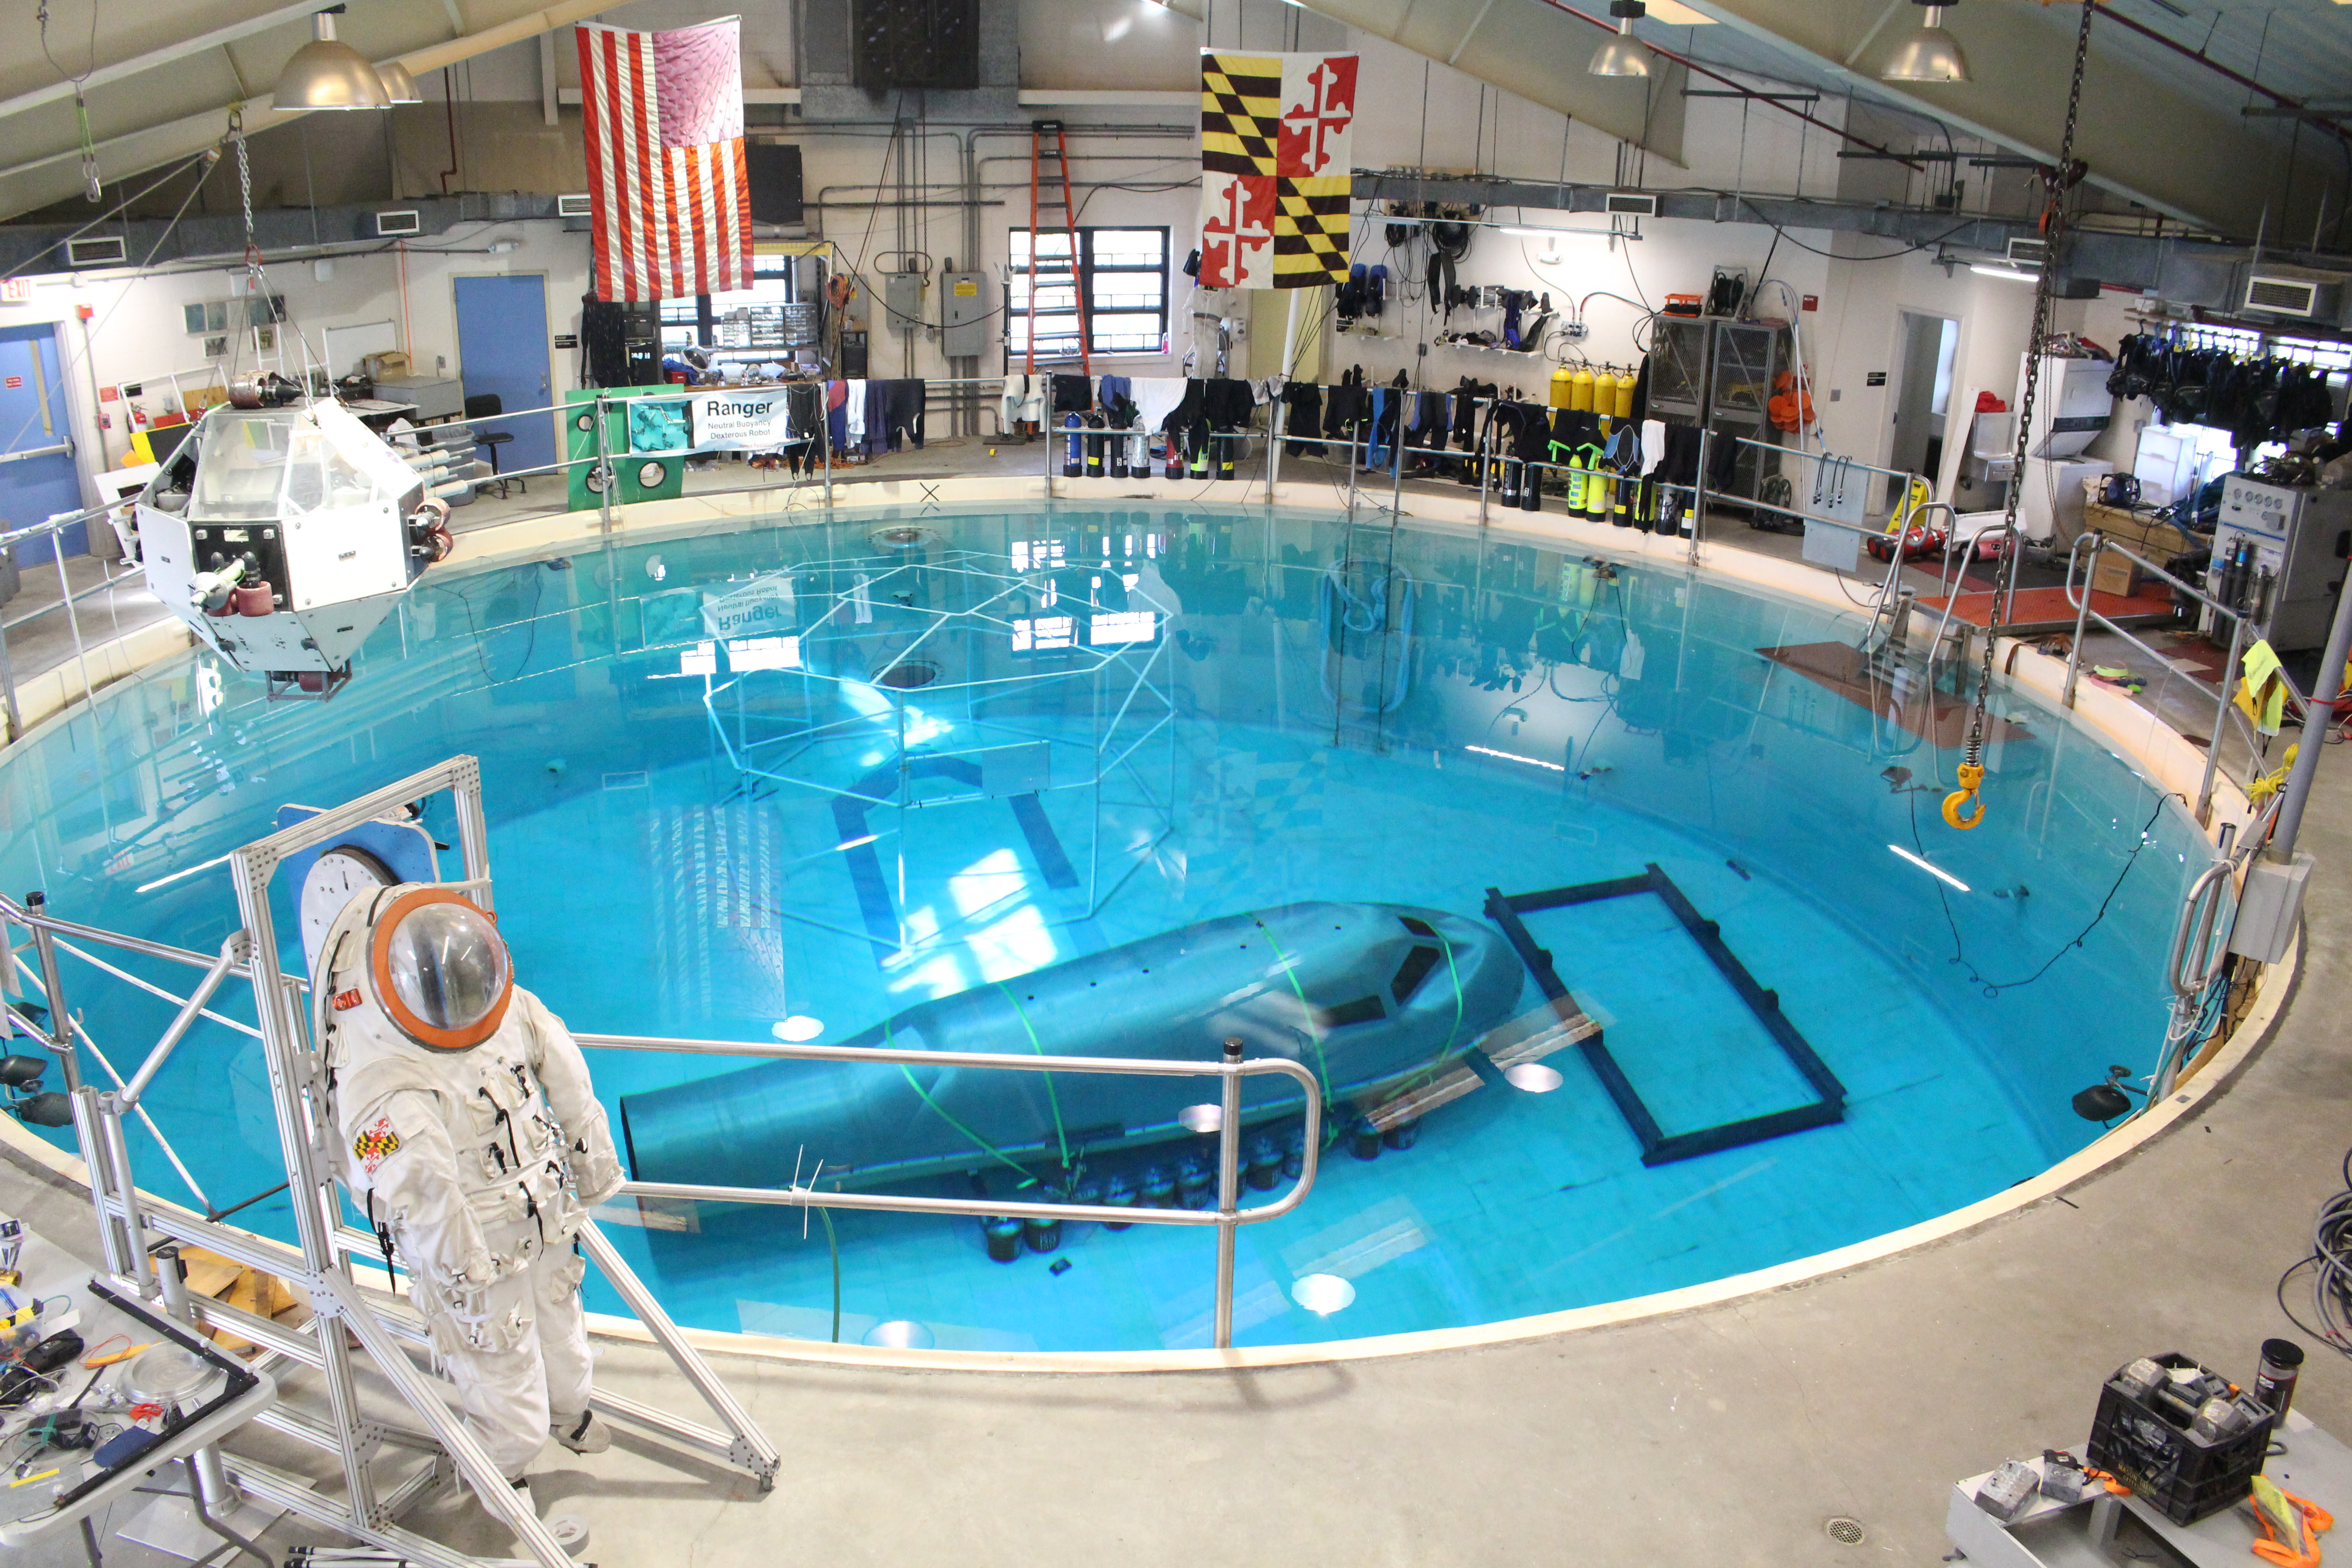 Umd Has A Pool That Simulates The Weightlessness Of Space It S One Of 6 In The World The